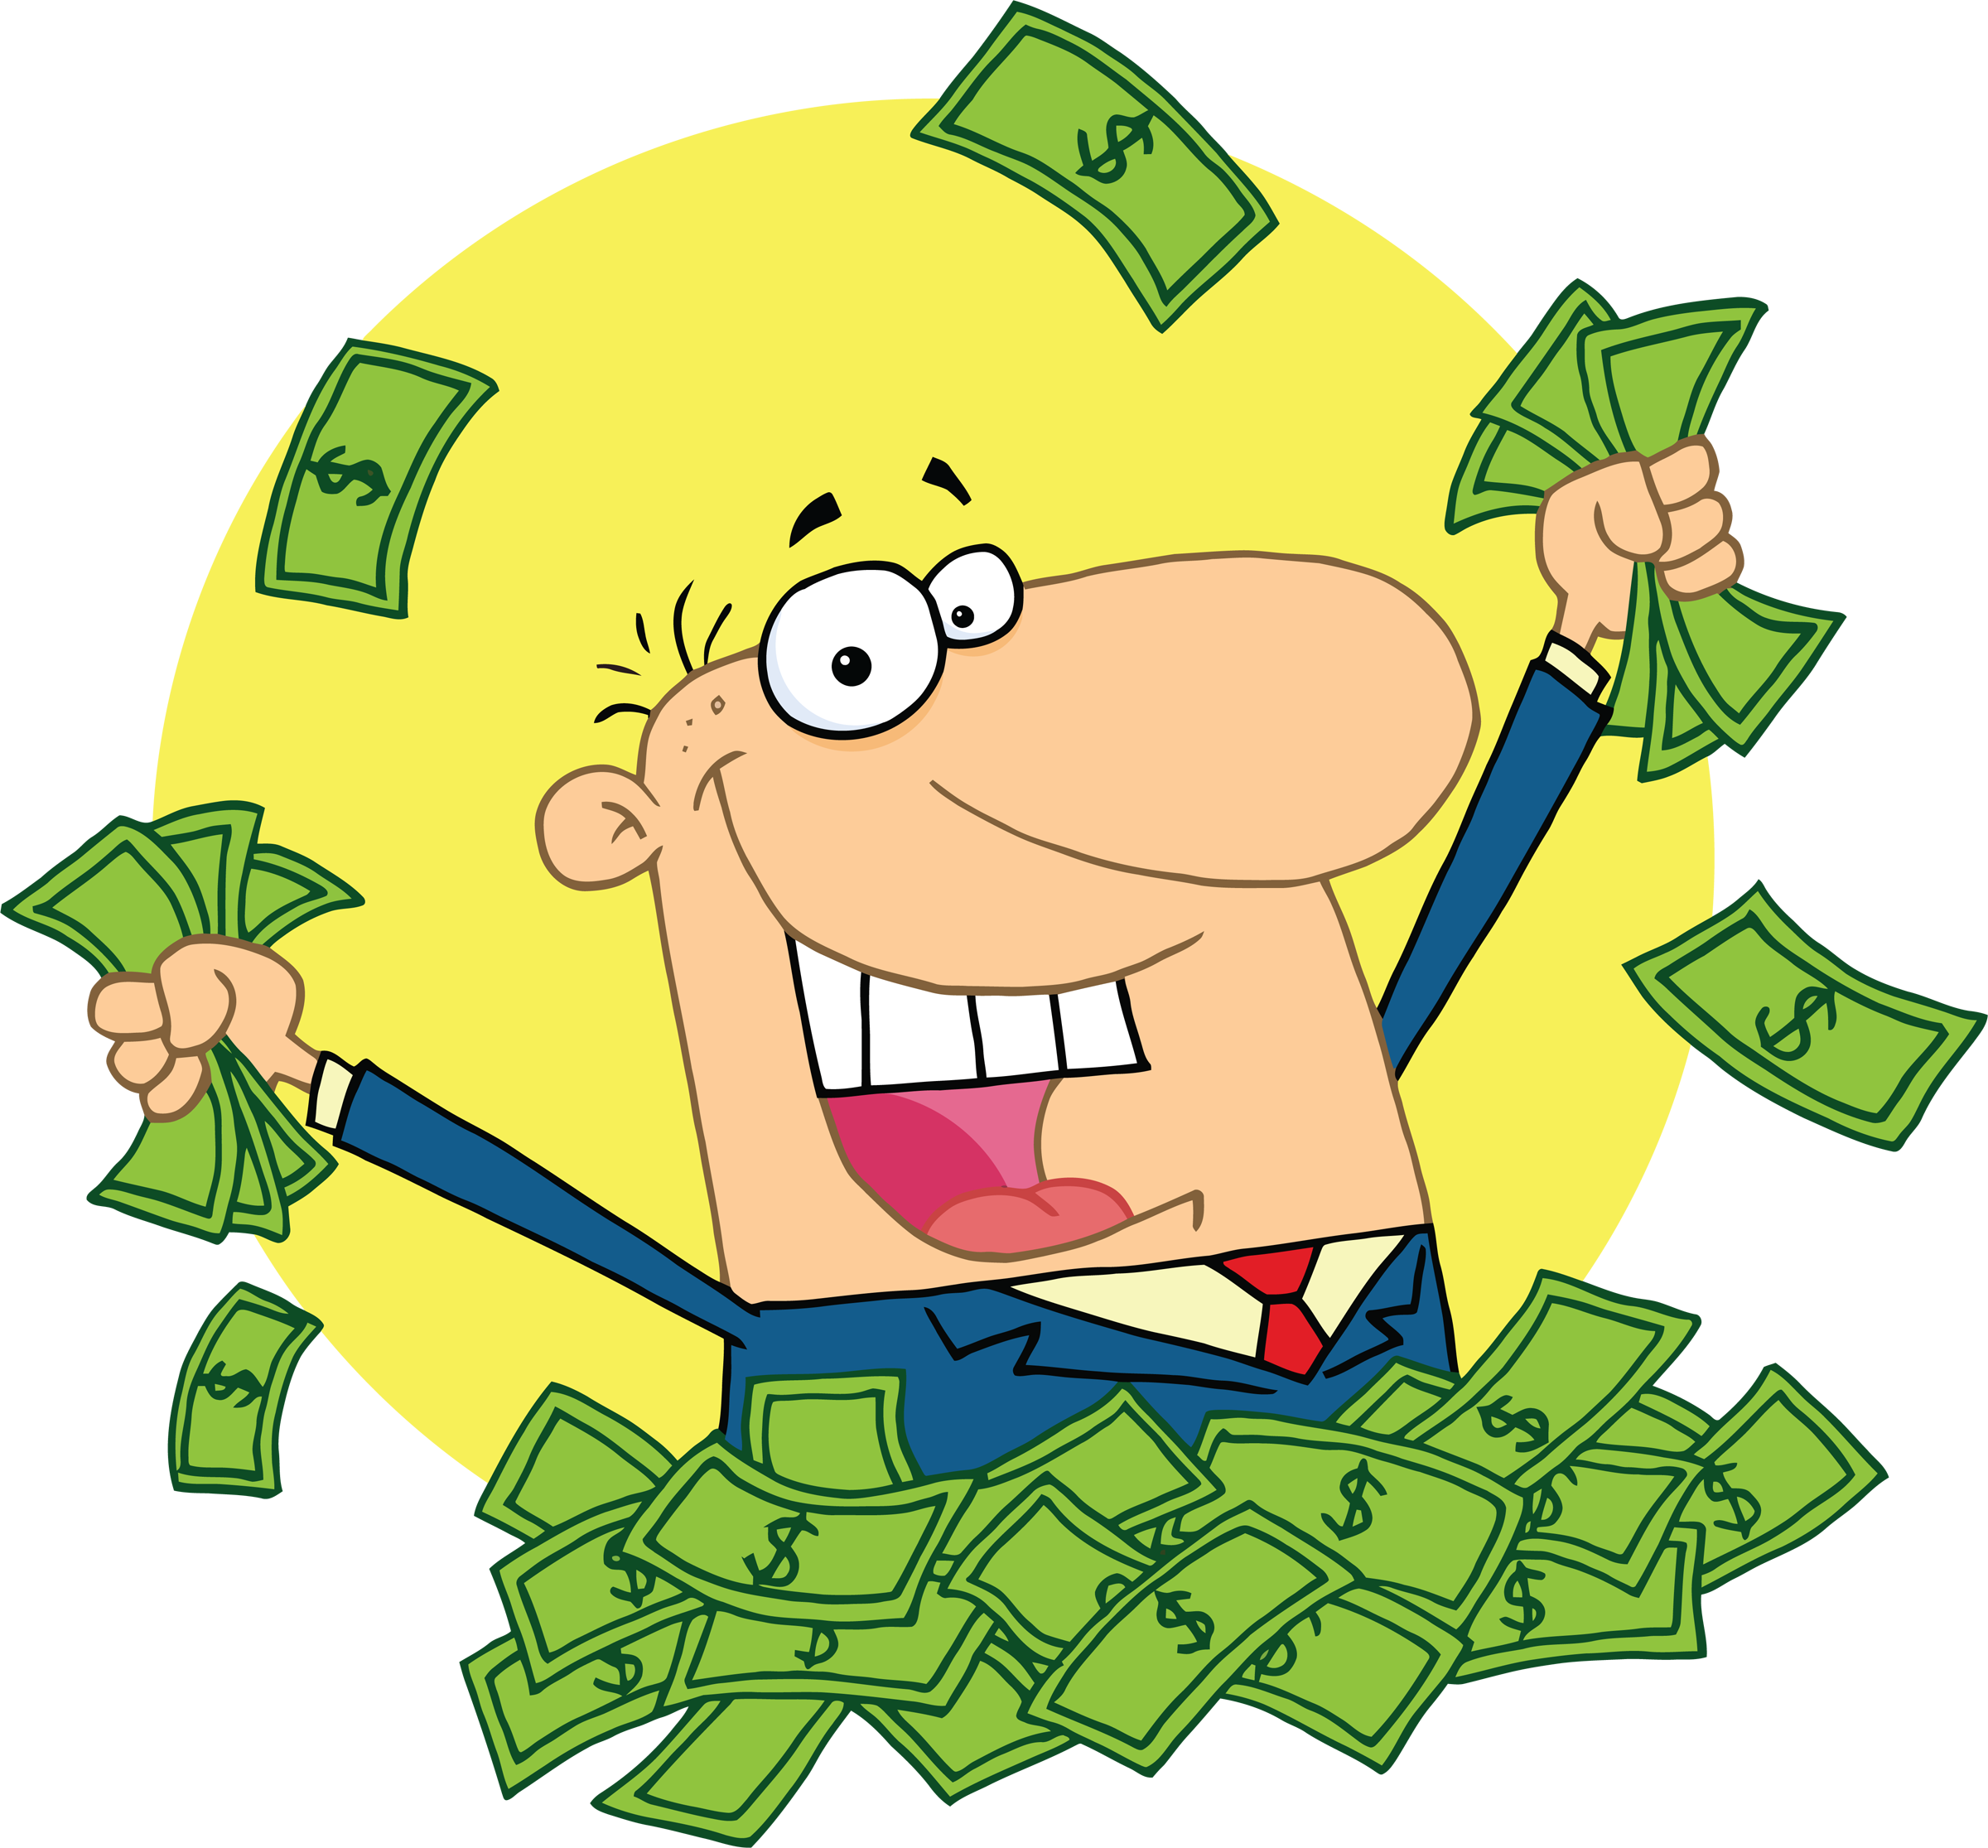 cartoon money Money clipart cartoon pencil and in color money png